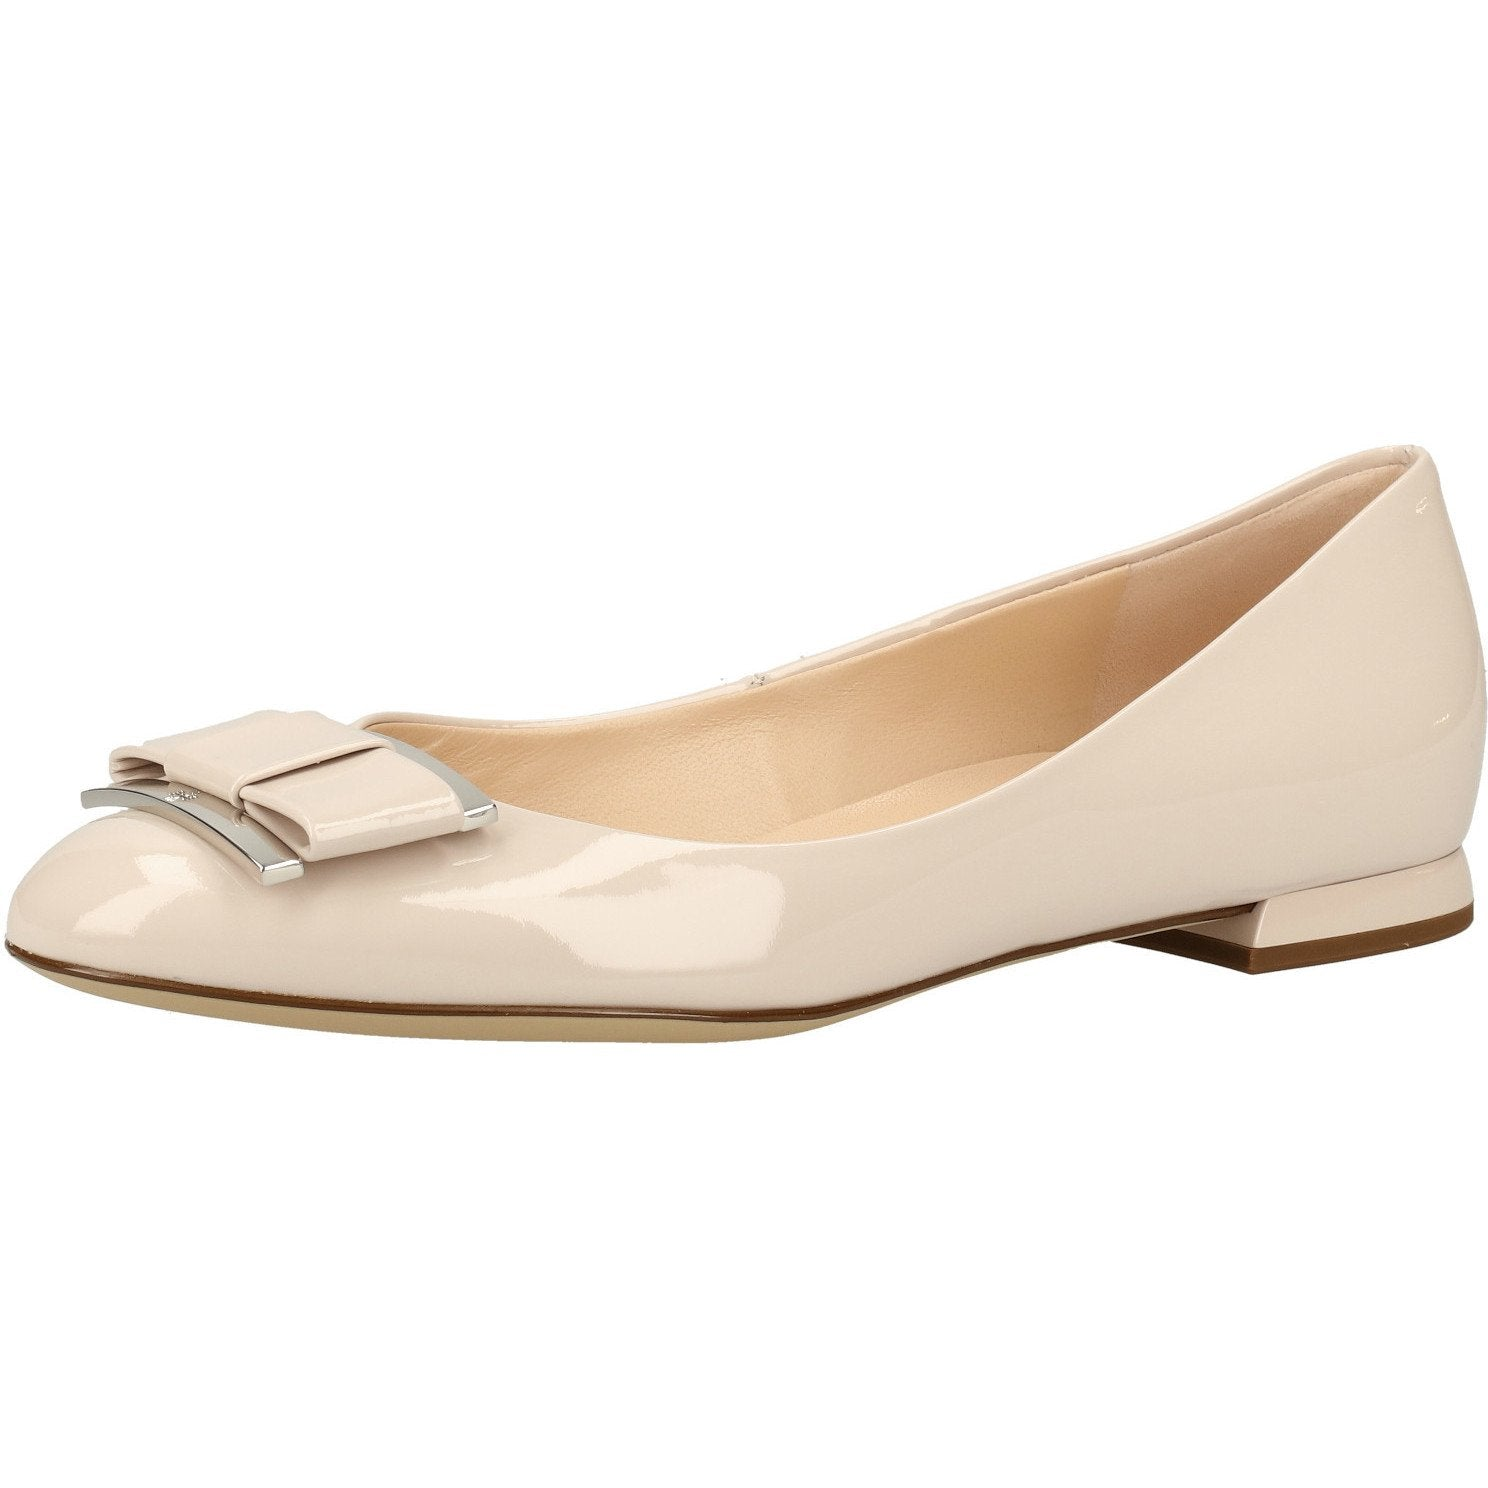 Hogl Womens Harmony Rose Low Heels 9-101084-4700 | Vilbury London